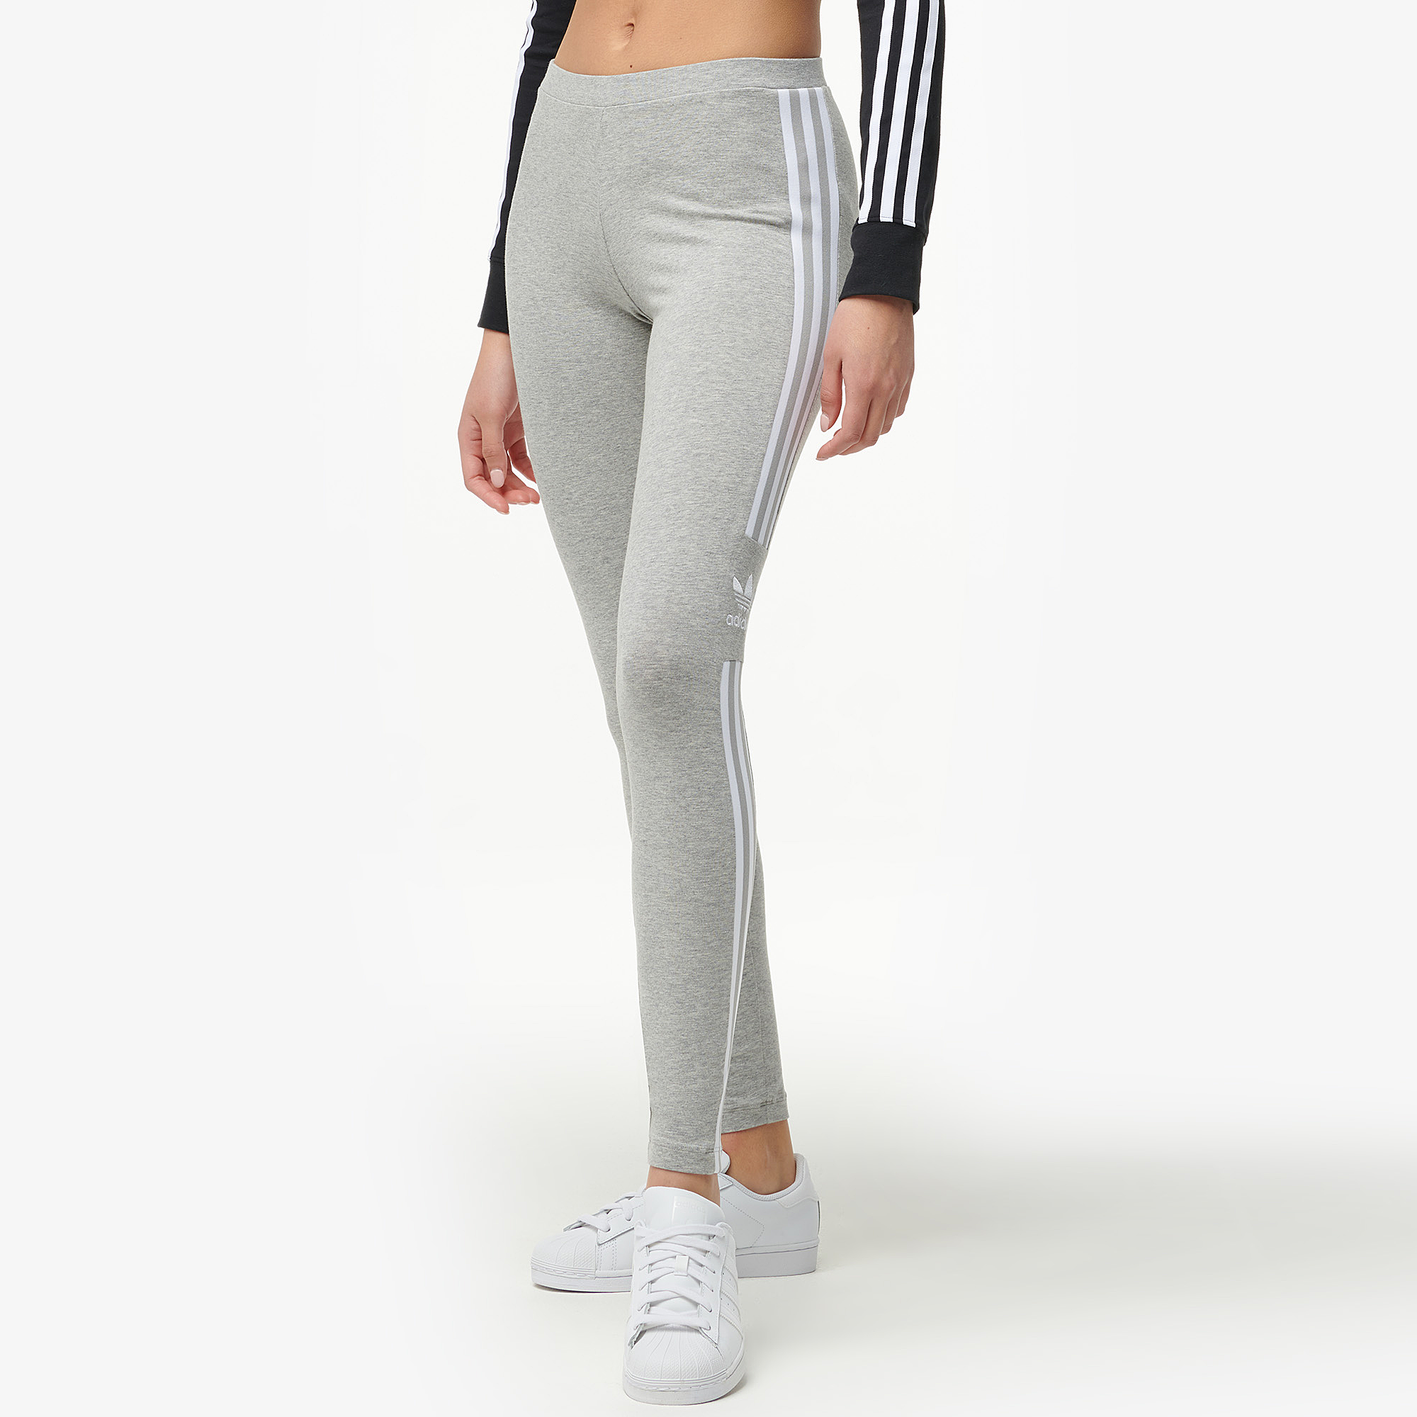 ef82393ef2e5b adidas Originals Adicolor New Trefoil Leggings - Women's - Casual ...